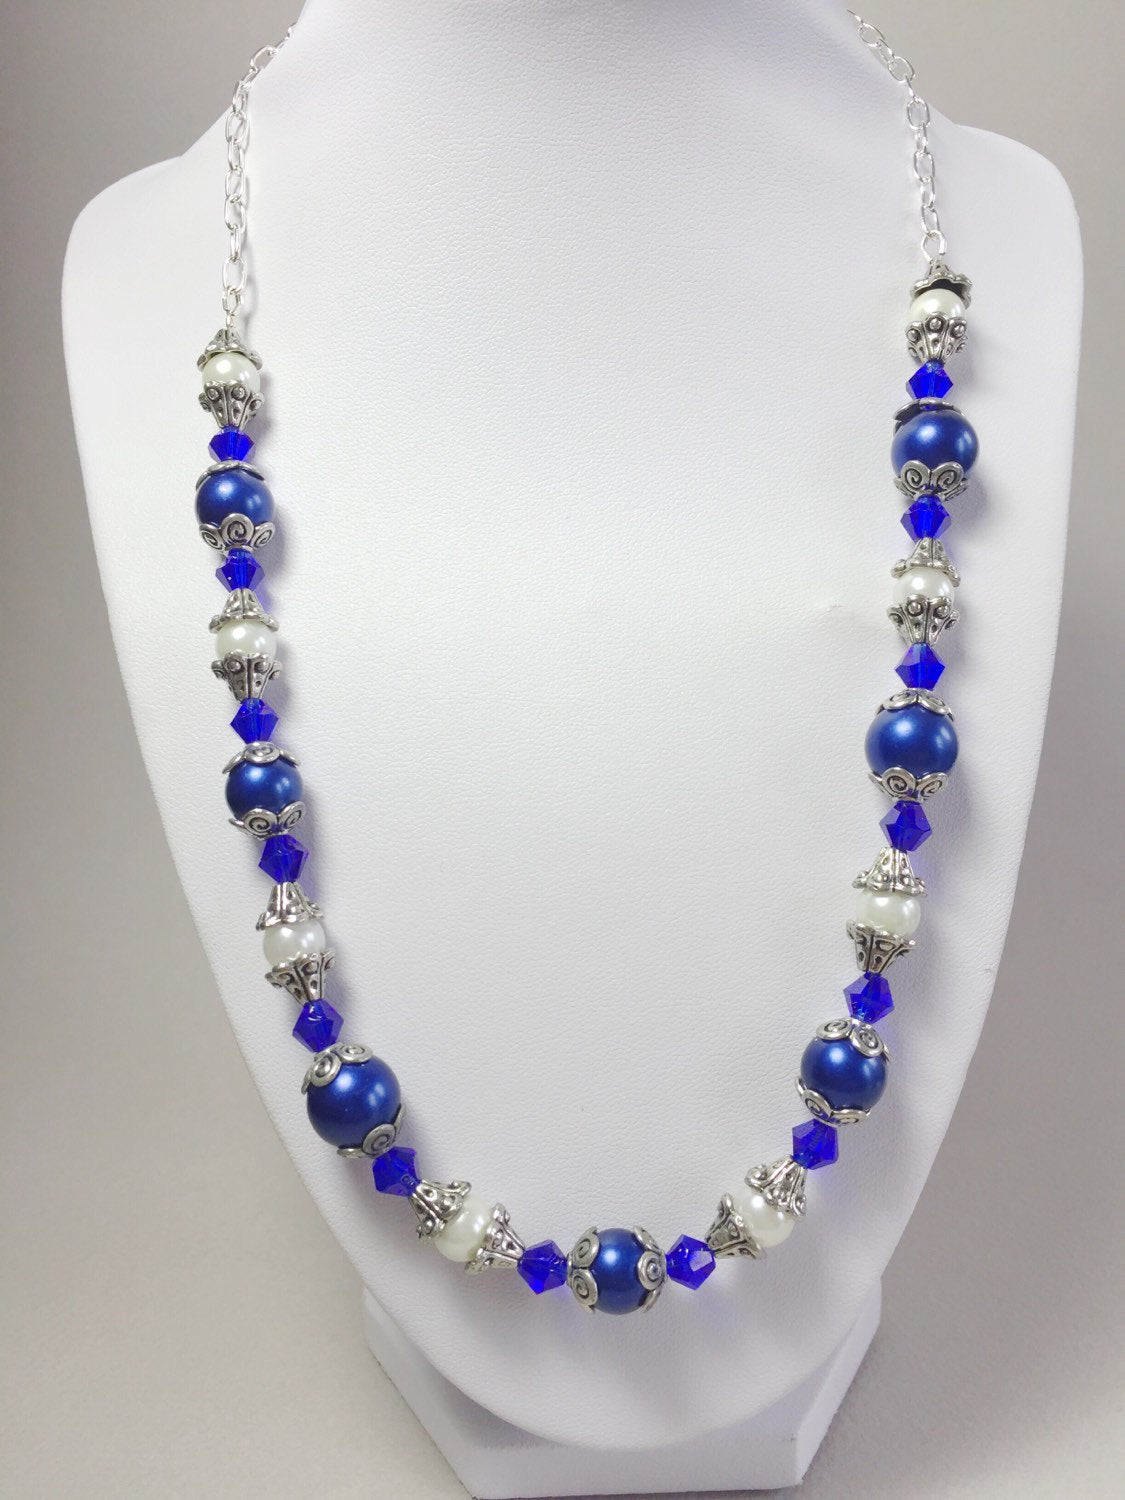 Blue and White pearl necklace, Blue pearl necklace, White pearl necklace, indigo blue necklace